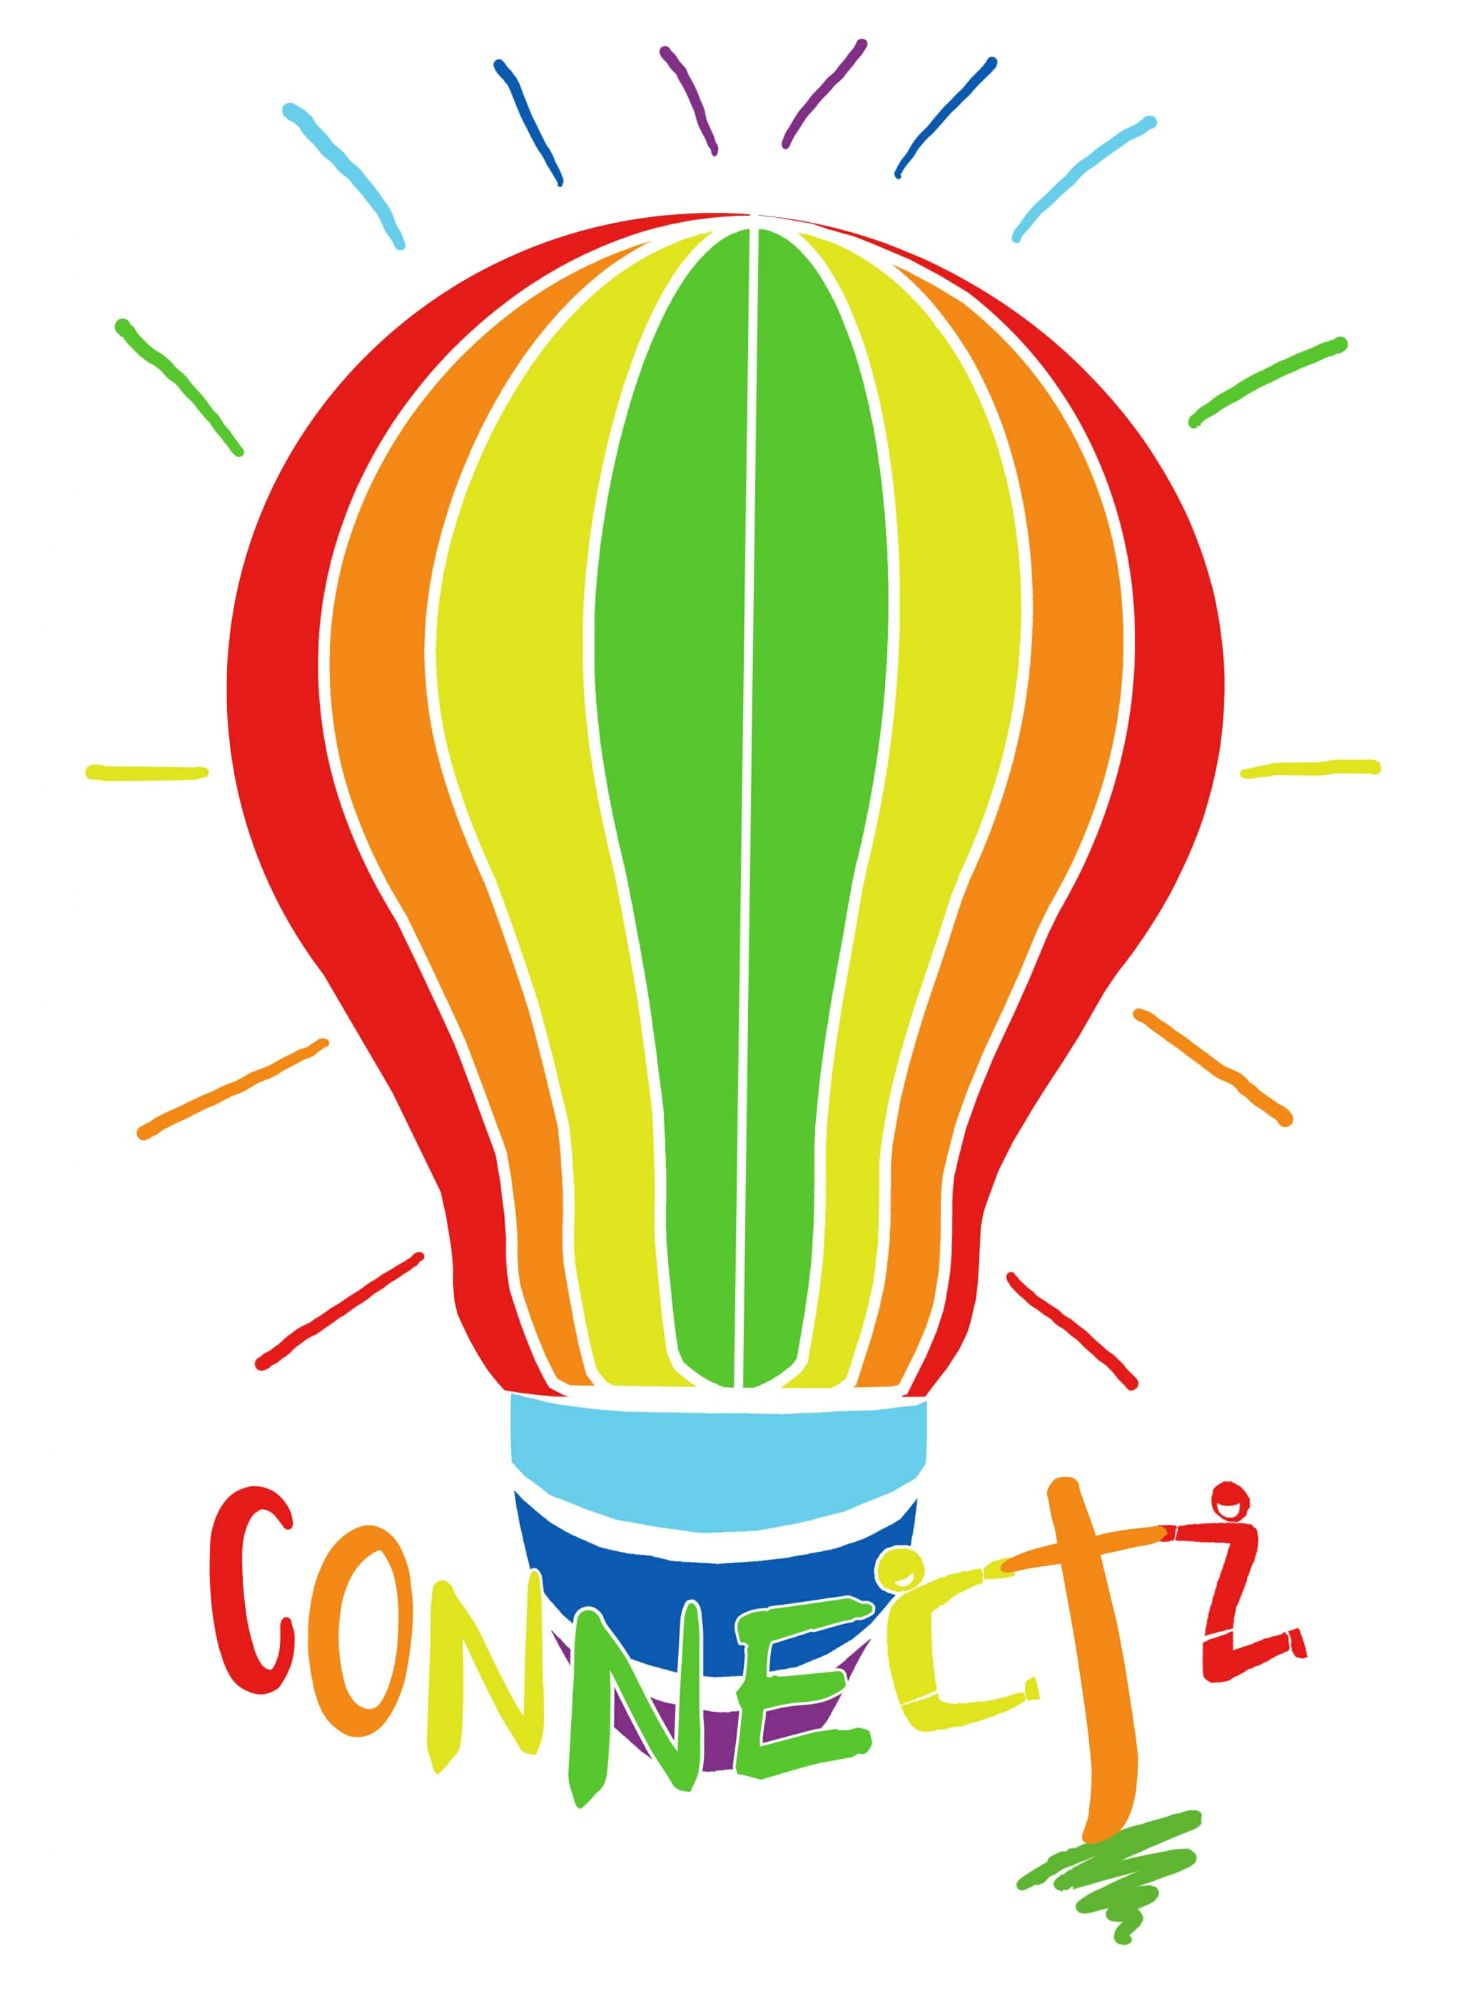 Connectz logo